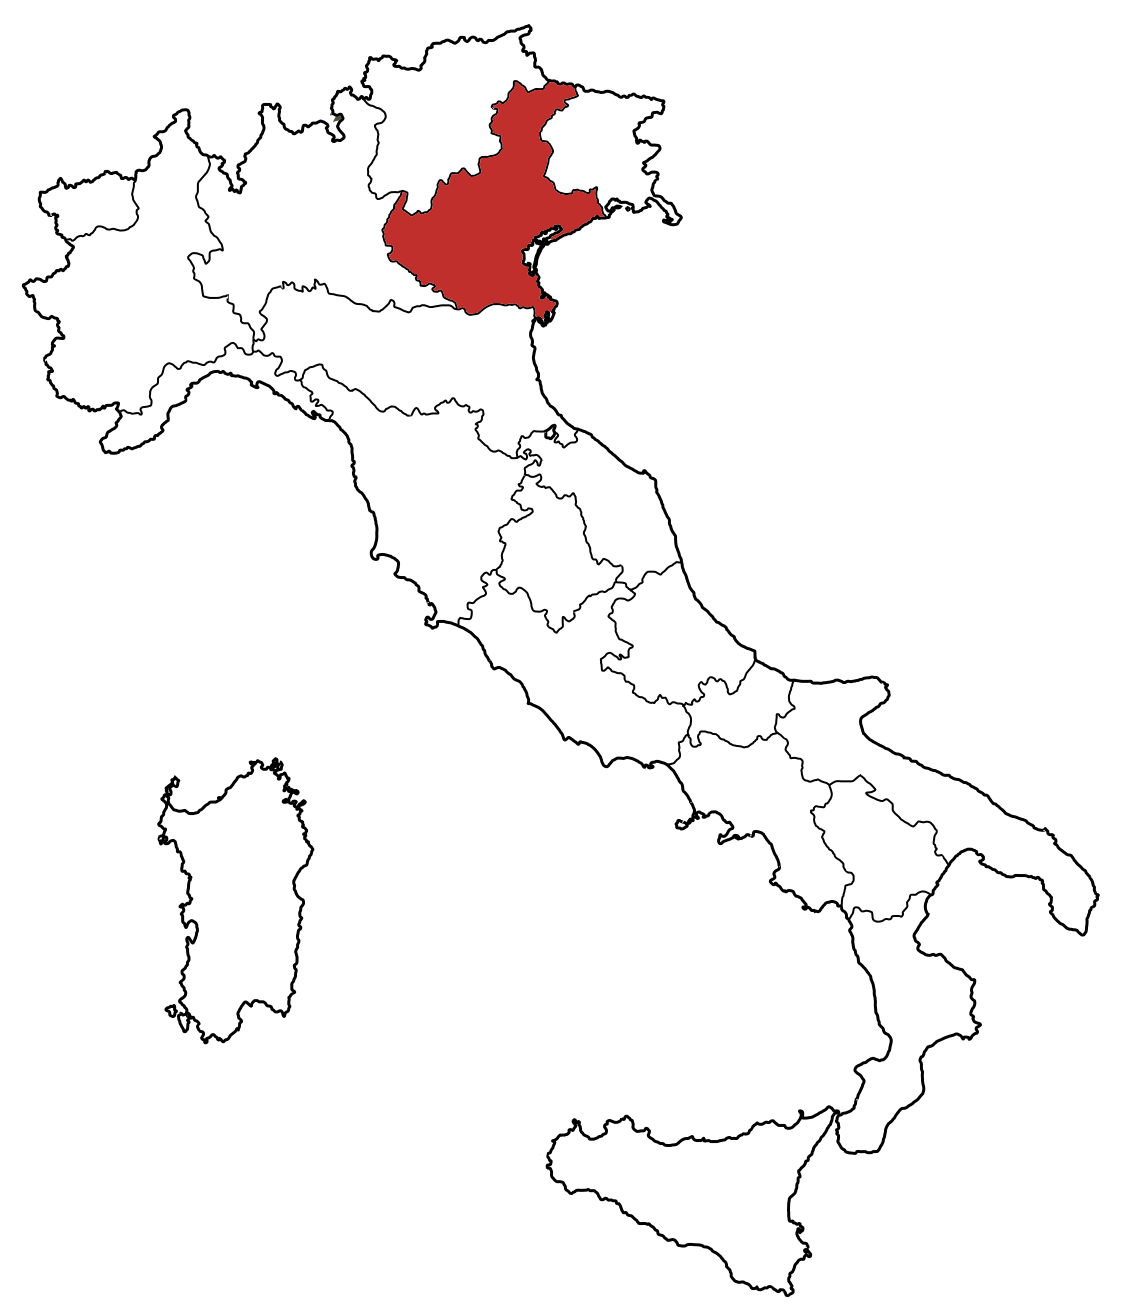 Map Coloring Italy Of Regions Book Blank PNG Image